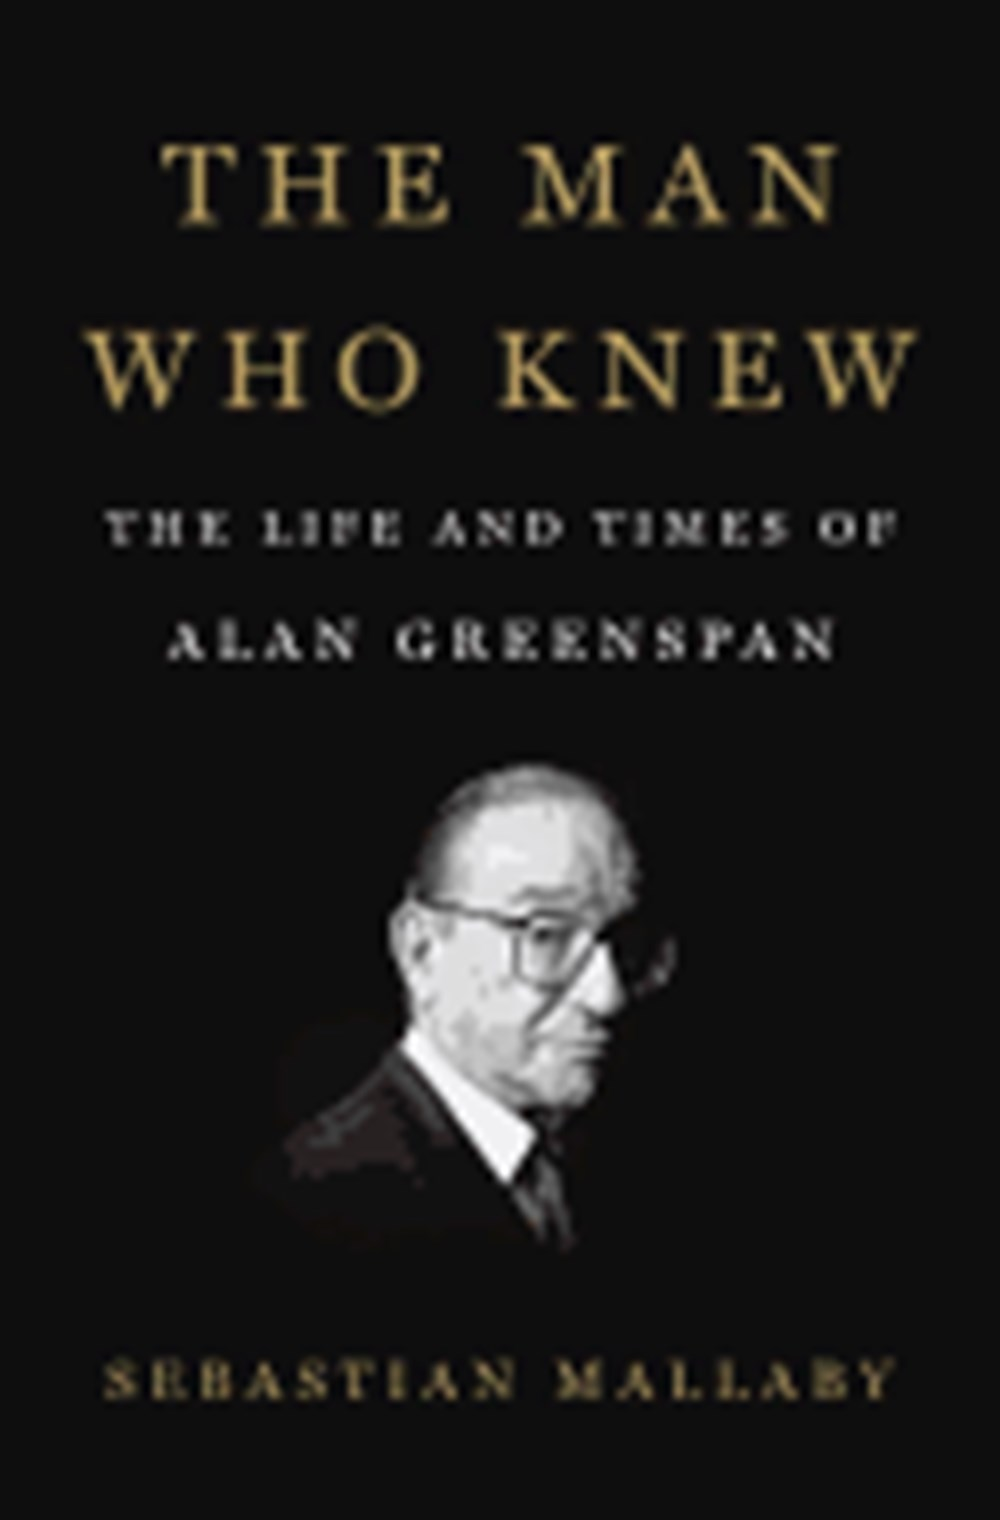 Man Who Knew The Life and Times of Alan Greenspan